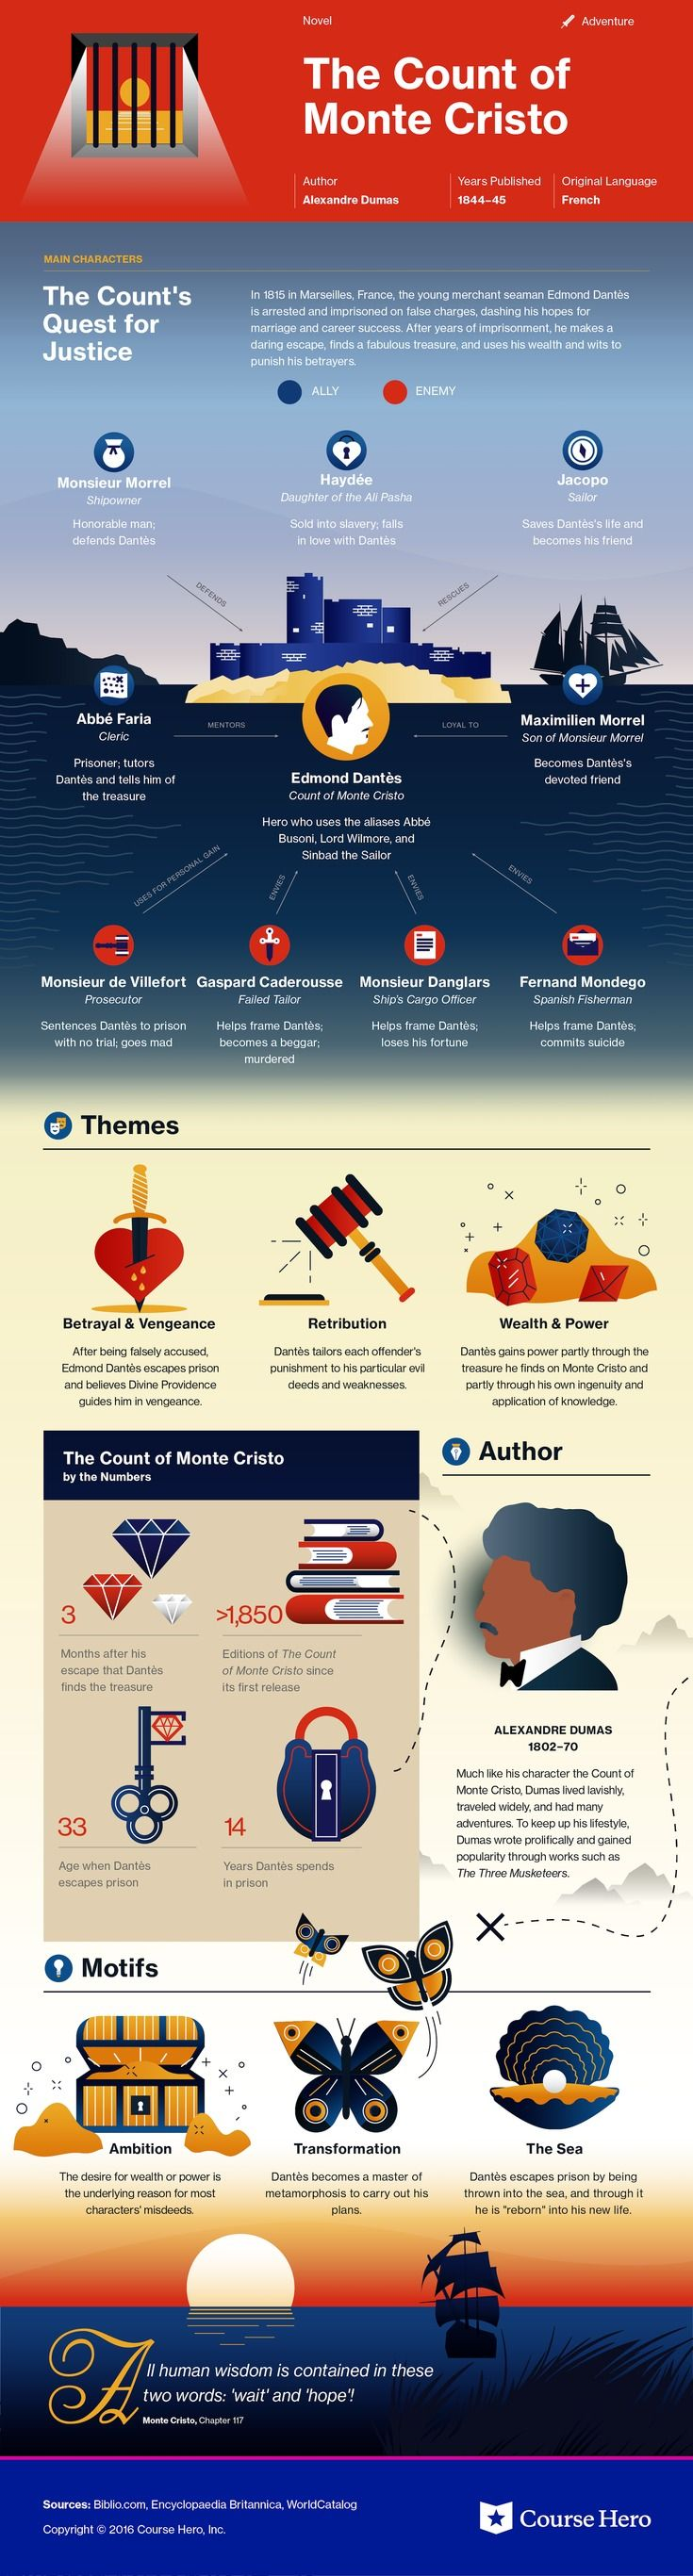 ideas about count monte cristo the count this coursehero infographic on the count of monte cristo is both visually stunning and informative